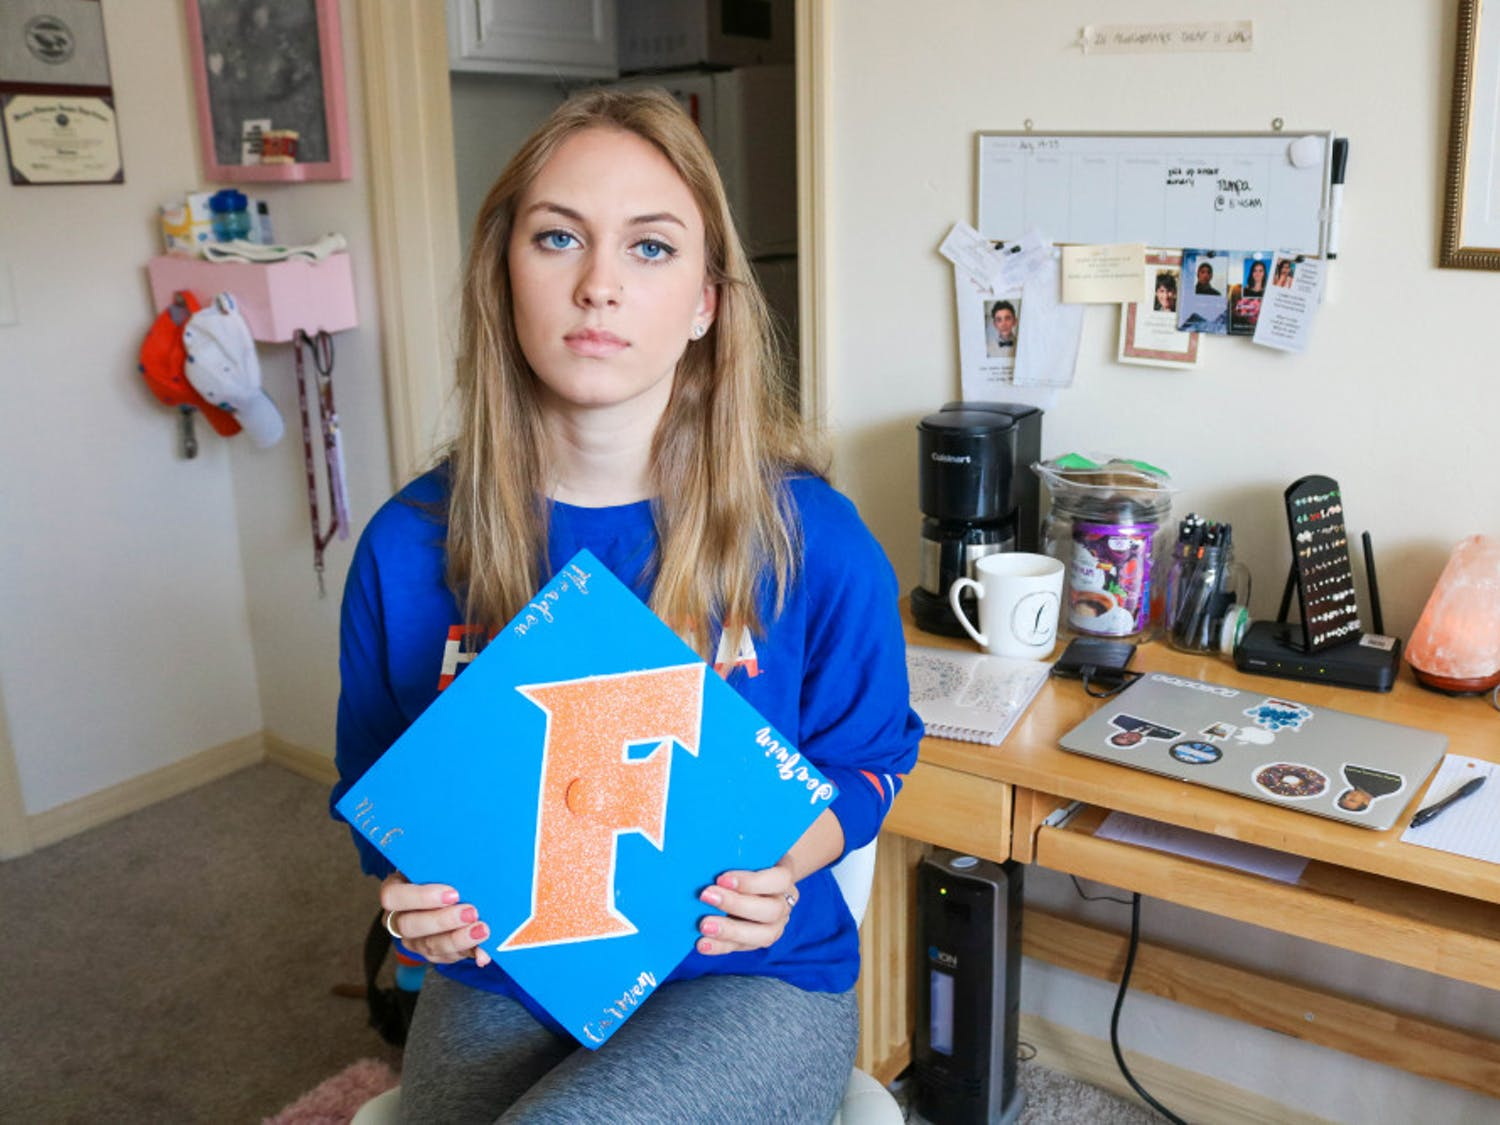 Elizabeth Stout, Parkland survivor and UF political science freshman, shows the cap she made for her graduation from Marjory Stoneman Douglas High School. Stout says she wants it to honor the four seniors that were unable to graduate due to the tragedy: Carmen Schentrup, Nicholas Dworet, Meadow Pollack and Joaquin Oliver.